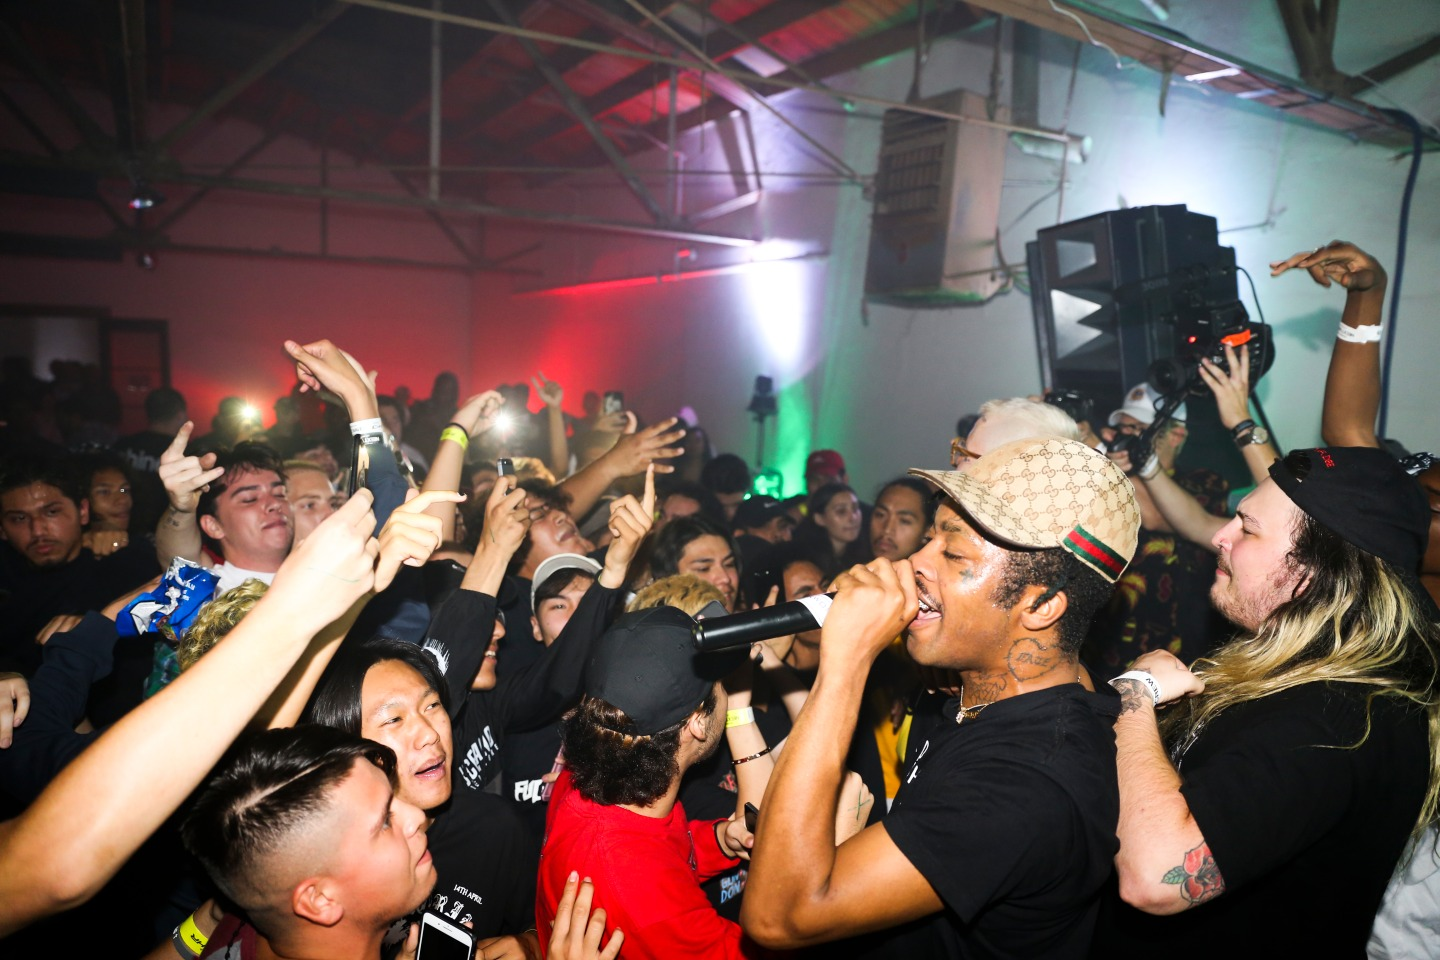 All The Pictures You Need To See From Fat Nick And Lil Tracy's Intimate L.A. Show